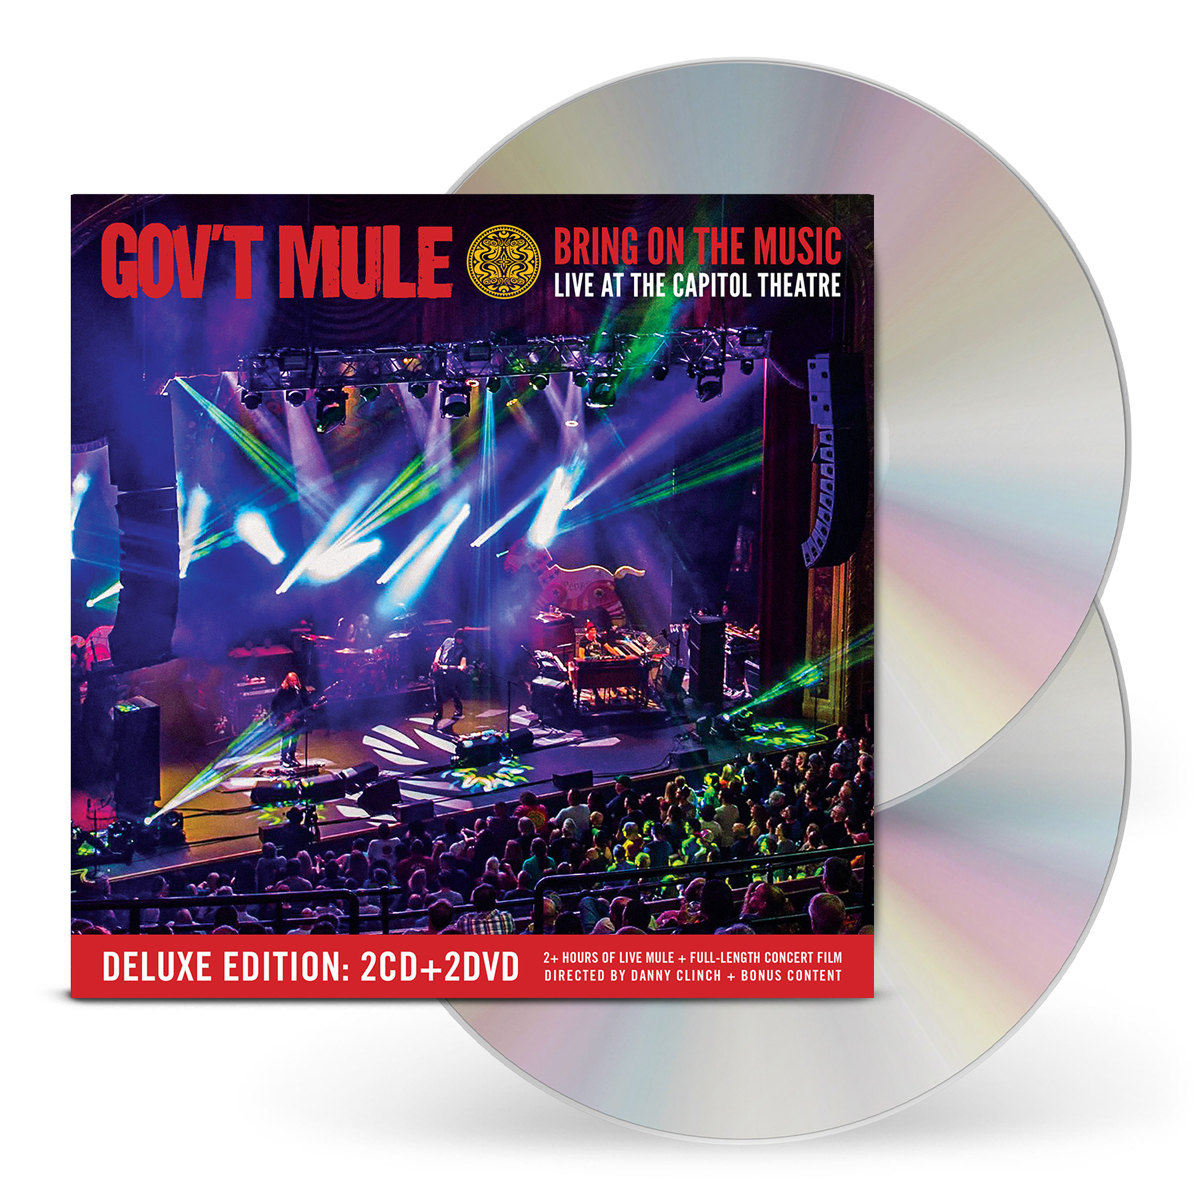 2-CD / 2-DVD Deluxe Edition: Bring On The Music / Live At The Capitol Theatre